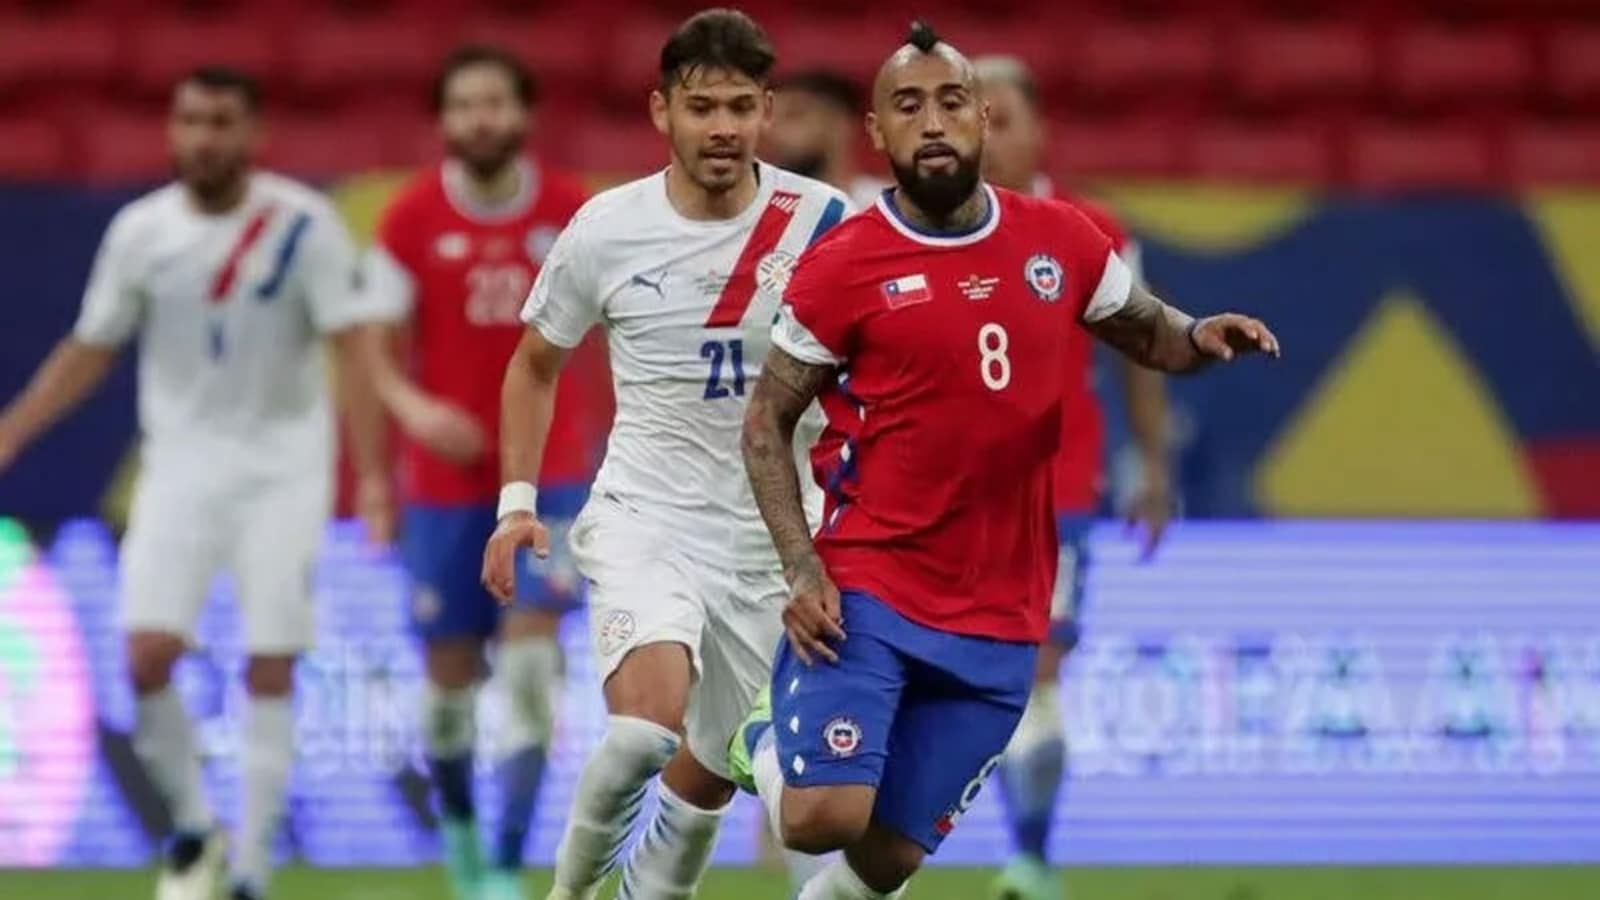 Almiron stars as Paraguay defeat Chile 2-0 in Copa America | Football News  - Hindustan Times